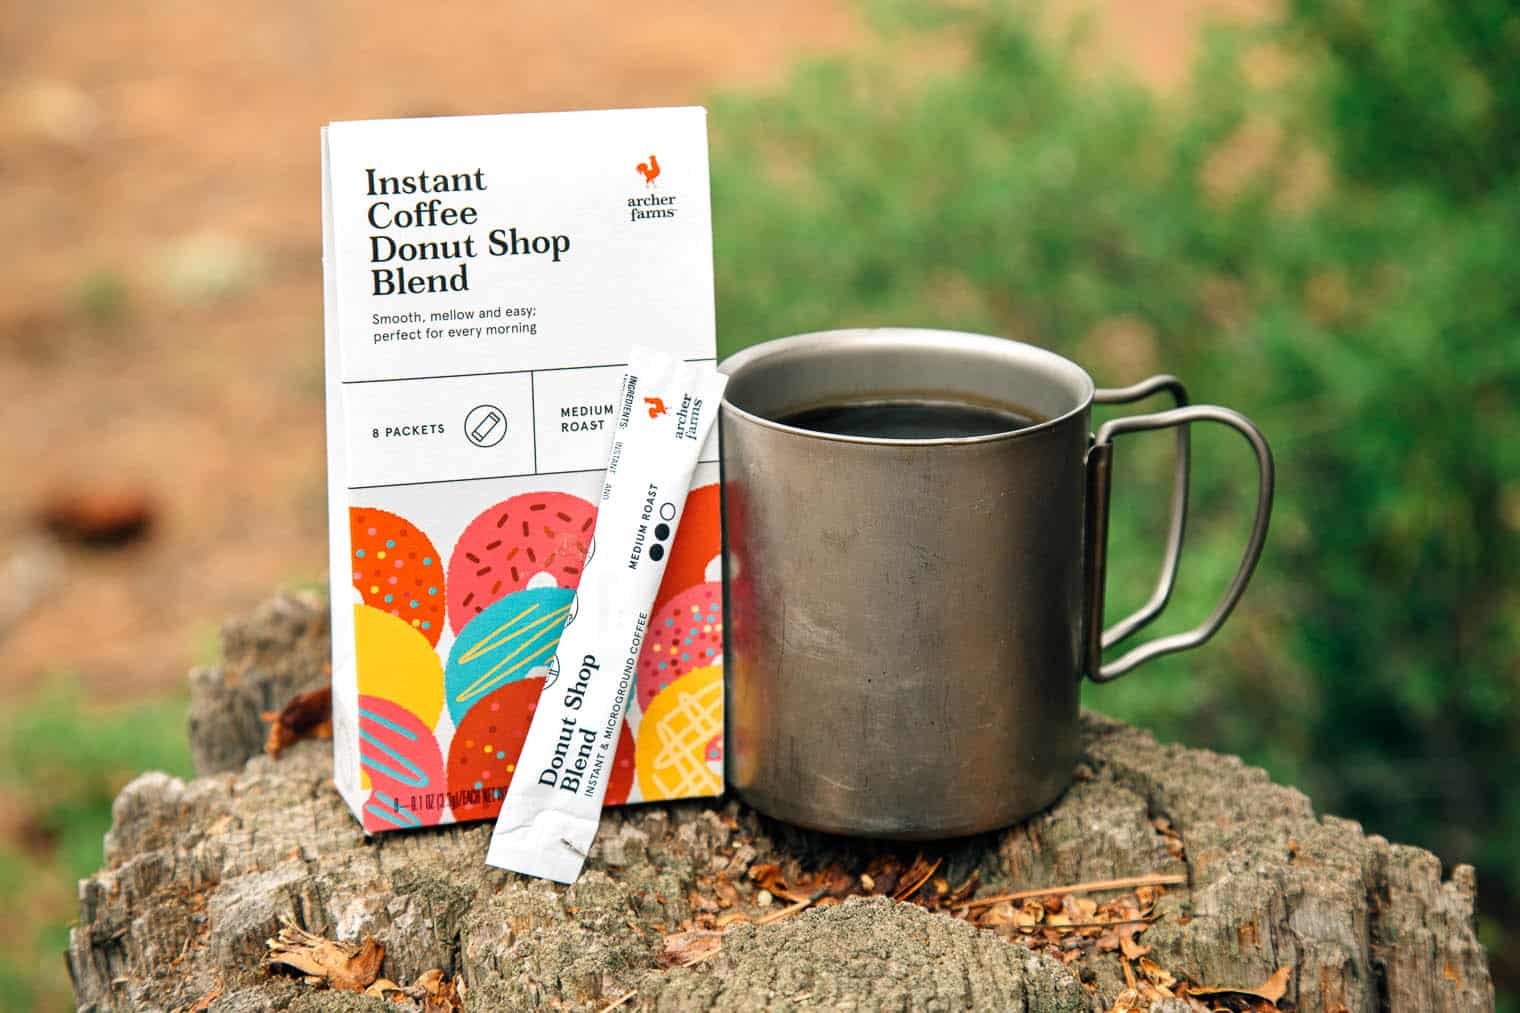 Target Archer Farms Instant Coffee - Instant Coffee for Backpacking